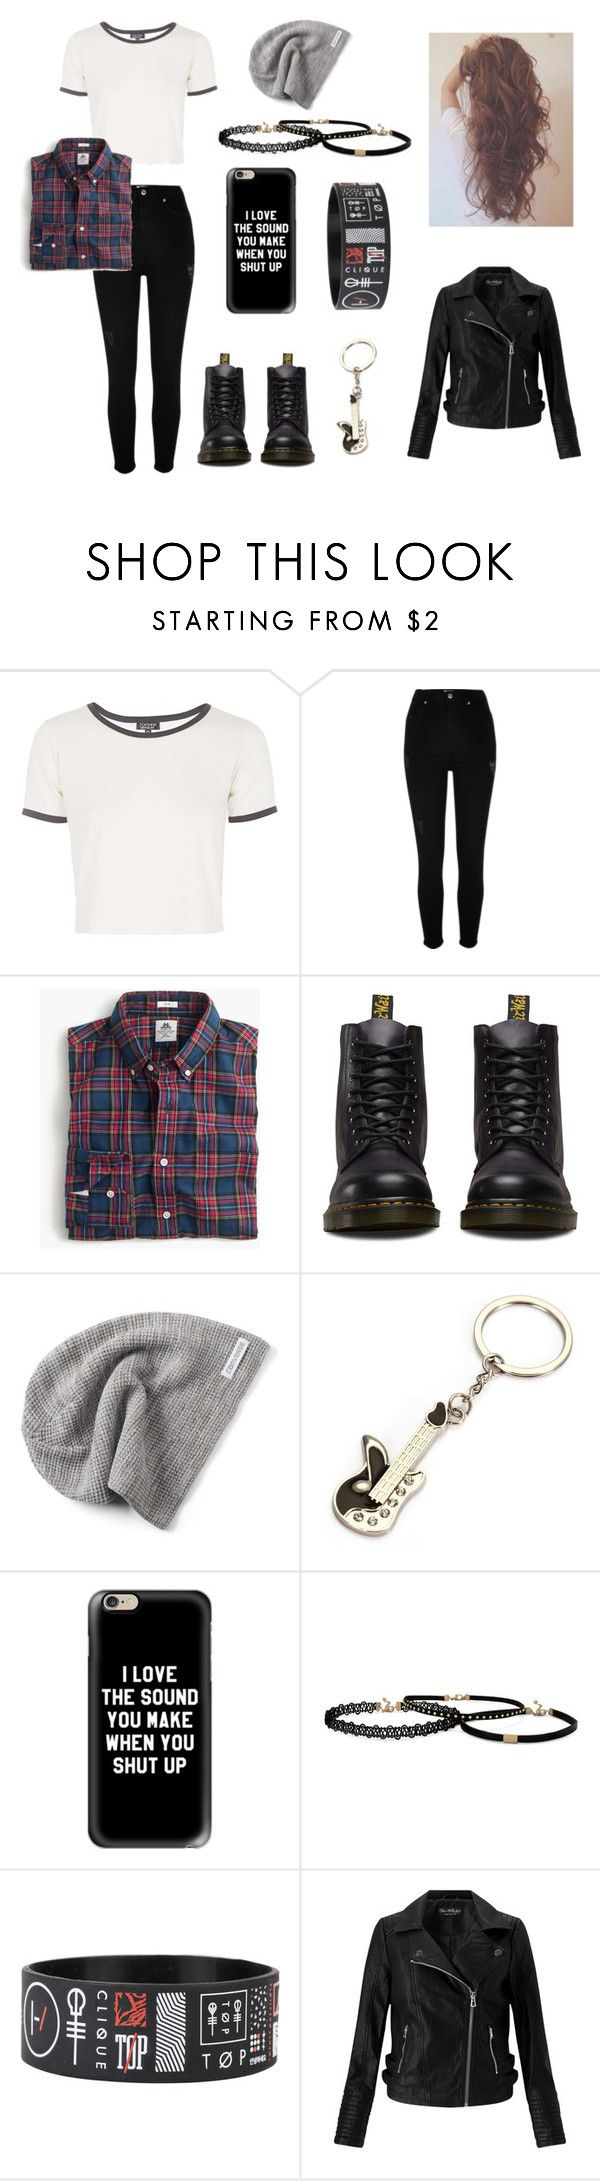 """""""Grunge/Punk Fashion"""" by coldplay-shirt on Polyvore featuring Topshop, River Island, Dr. Martens, Converse, Casetify and Miss Selfridge"""